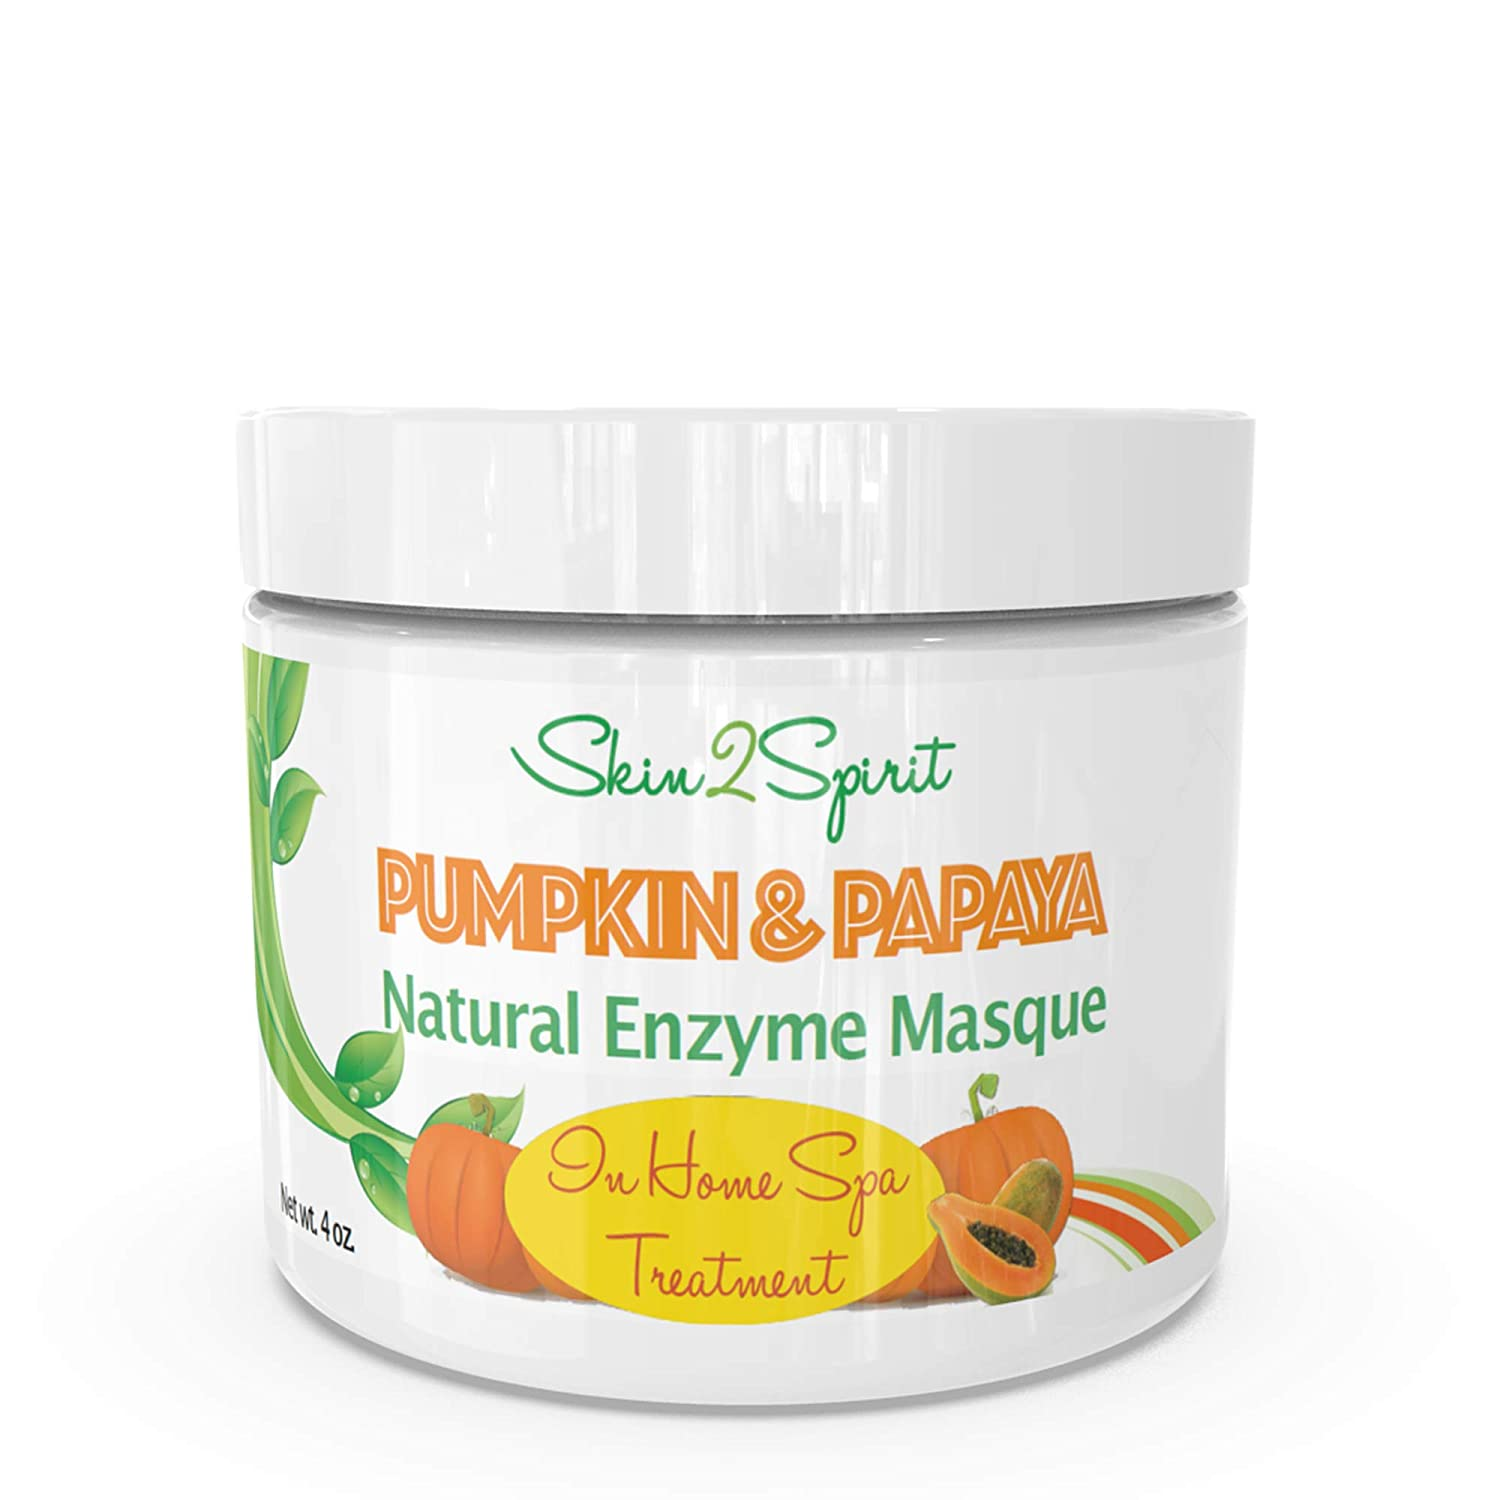 Mask of persimmons for the face - a great cosmetic